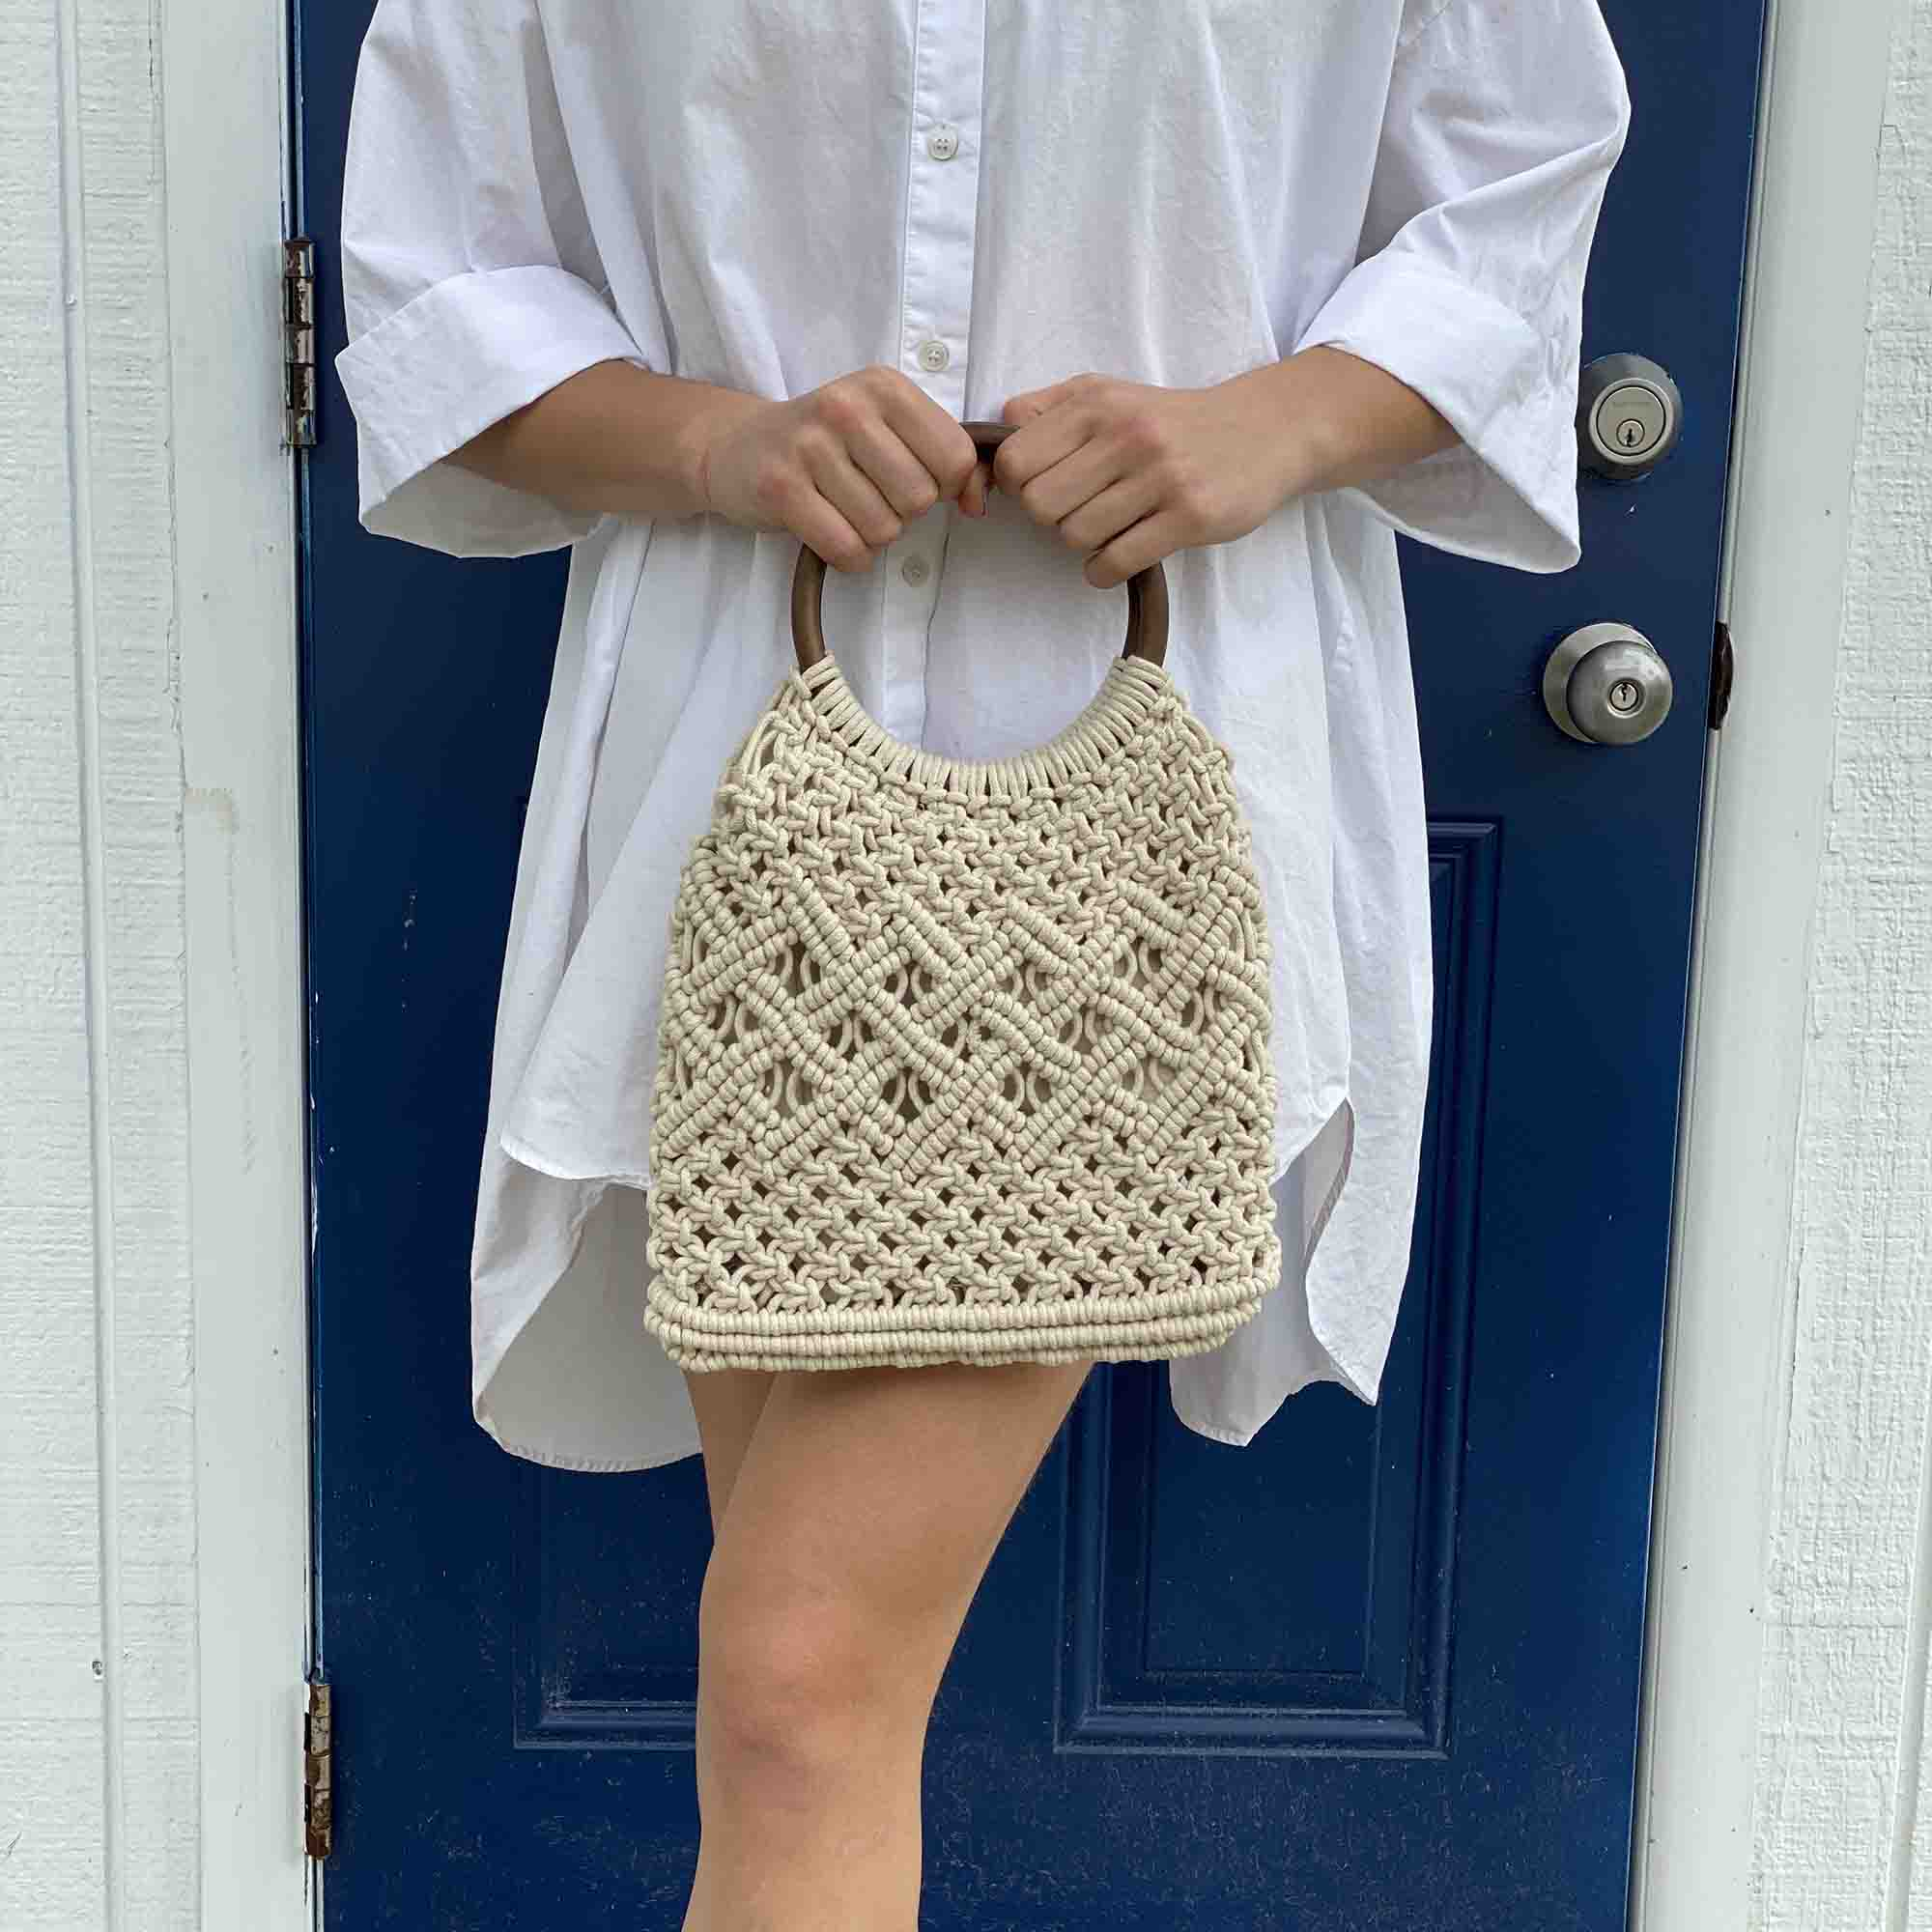 Macramé Bag with Wooden Handle, Lined Interior